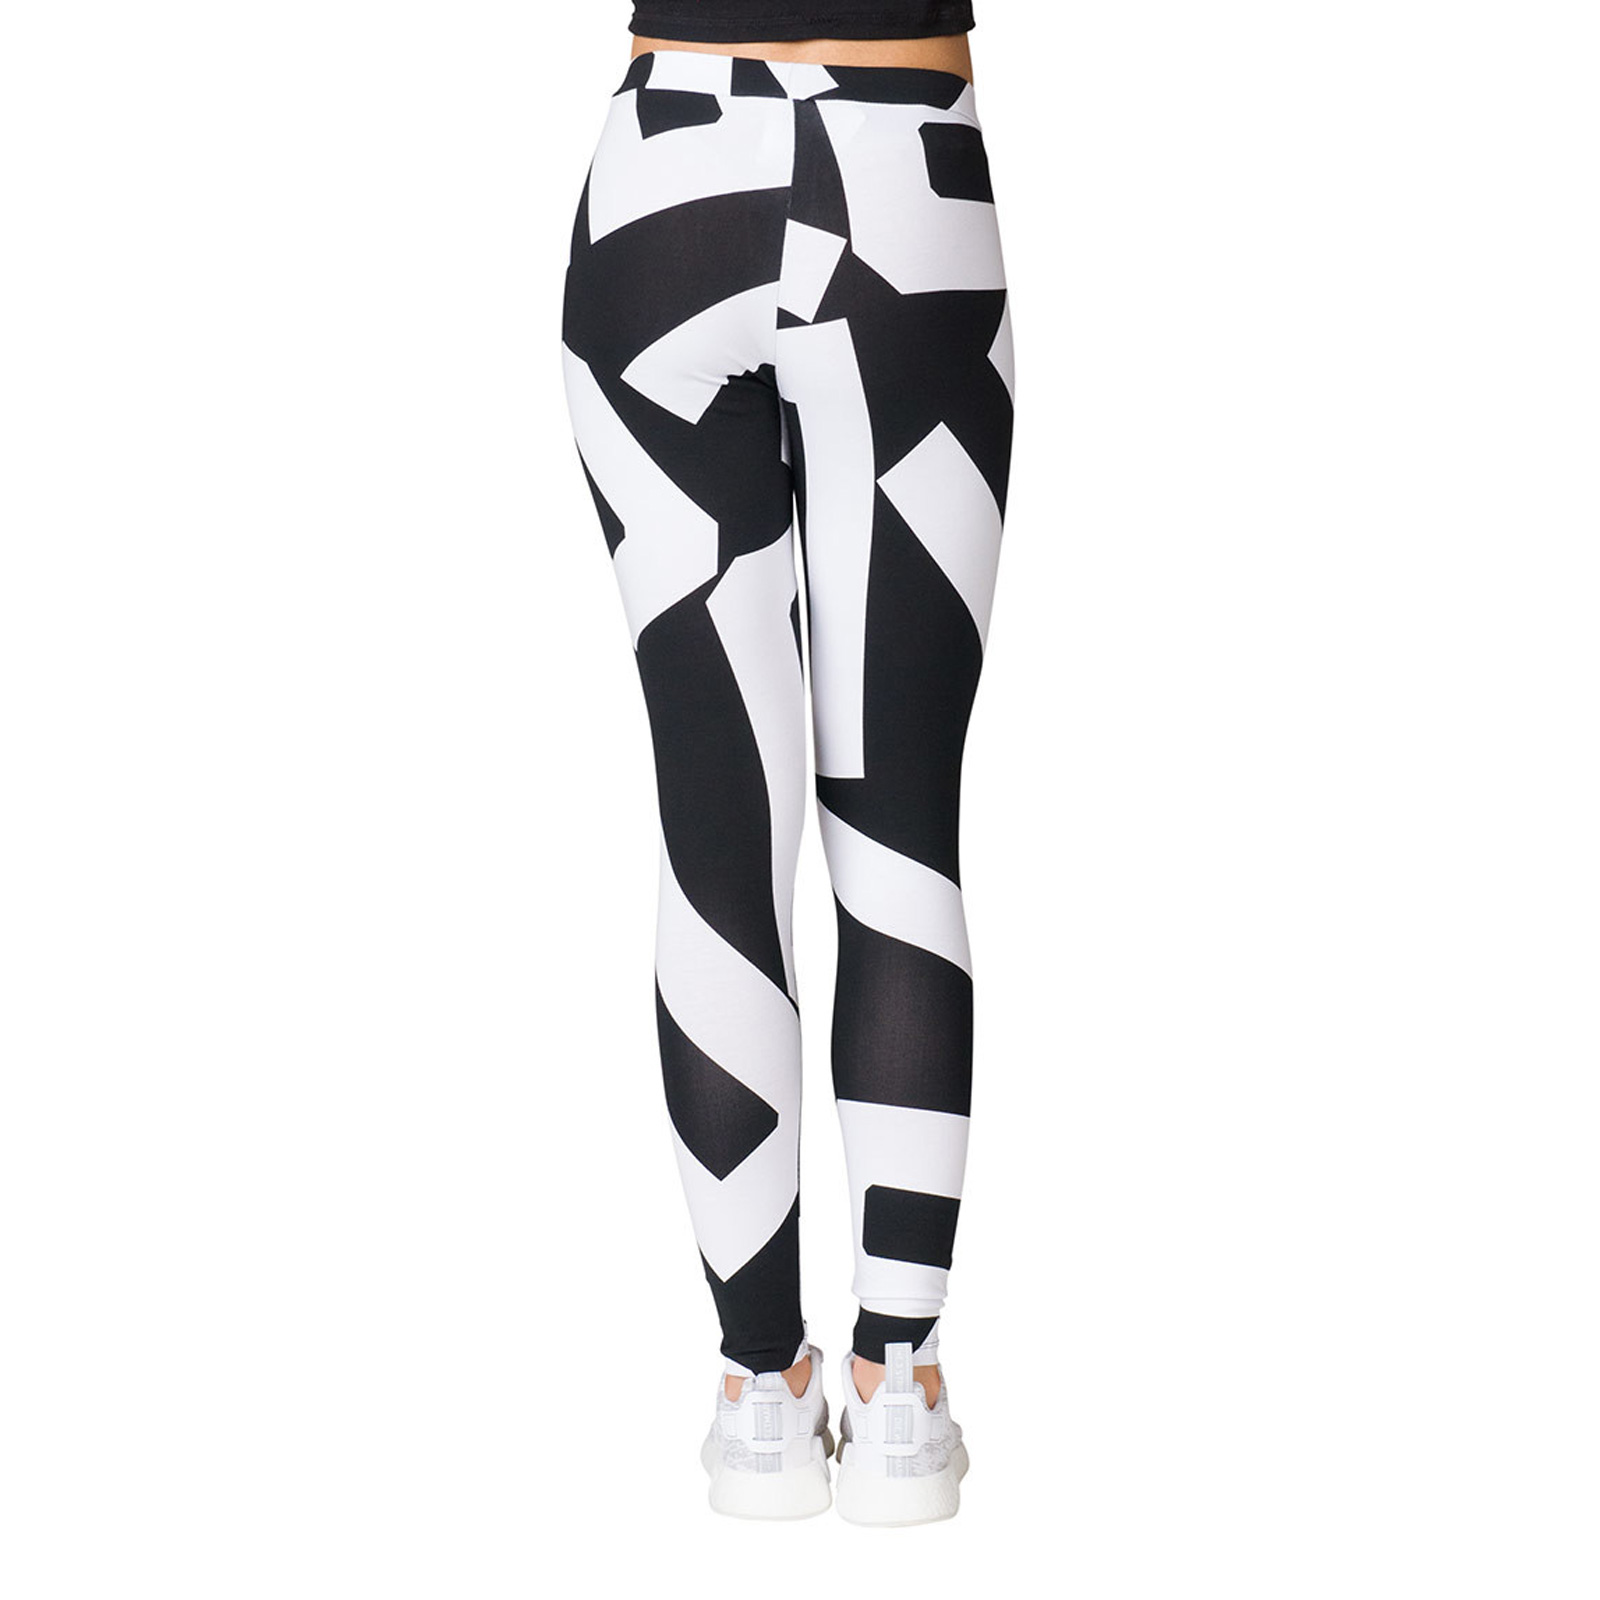 19f74ffb38c536 didas Originals Bold Age Letters Damen Leggings Sport Tight Yoga Fitness  Hose